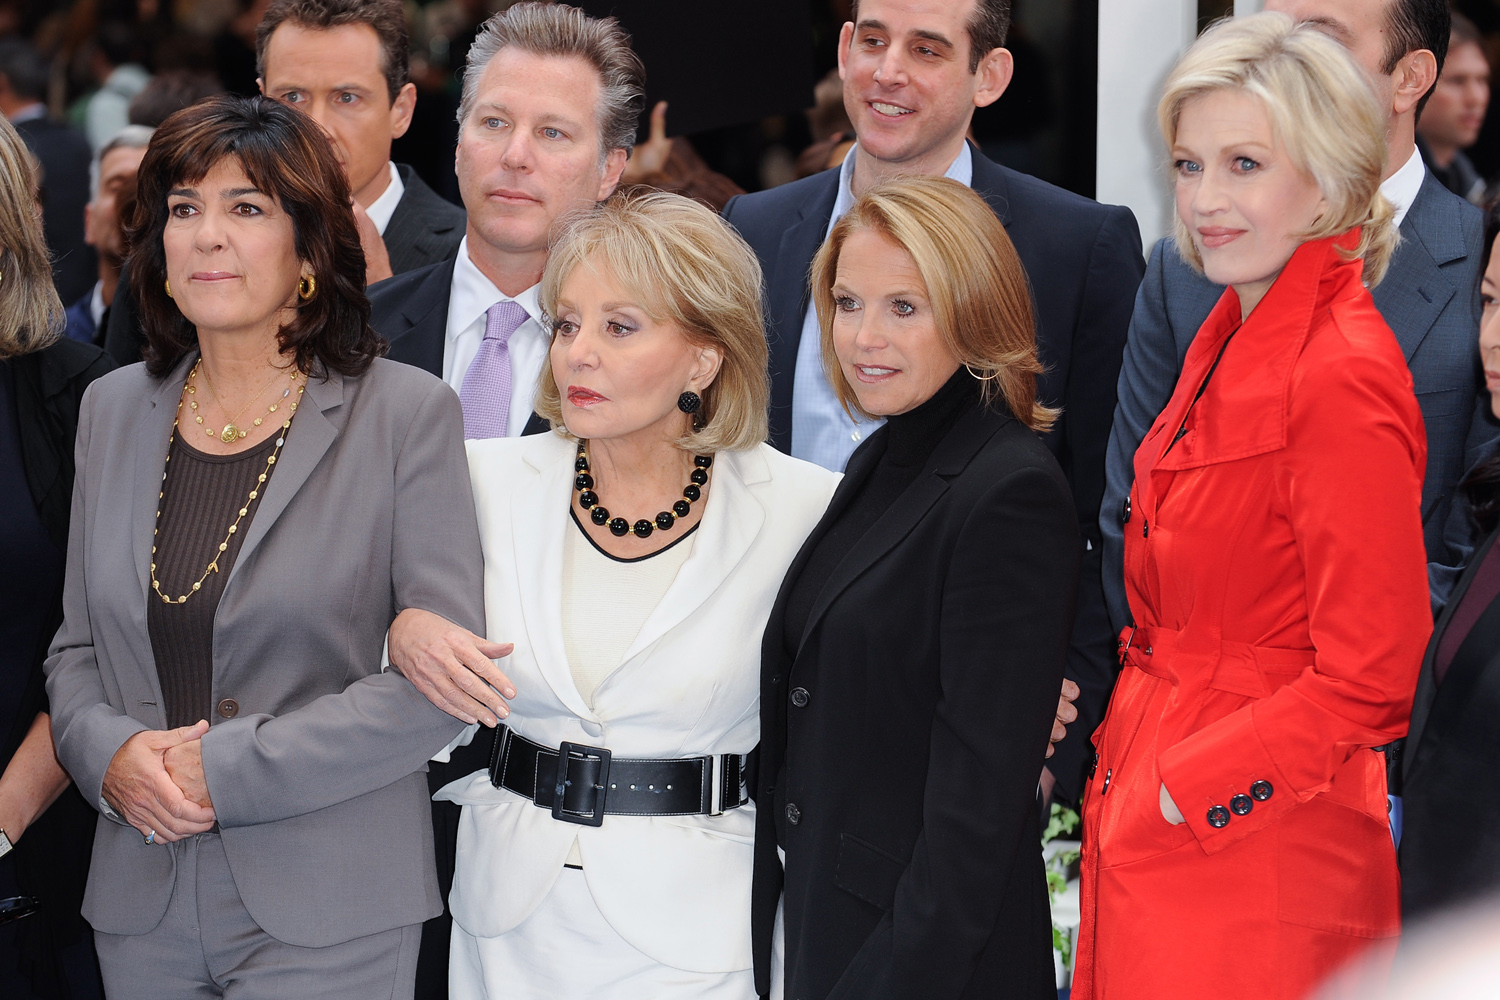 News reporters Christiane Amanpour, Barbara Walters, Katie Couric, and Diane Sawyer tape an interview at  Good Morning America  at the ABC Times Square Studios in New York City, Oct. 3, 2011.